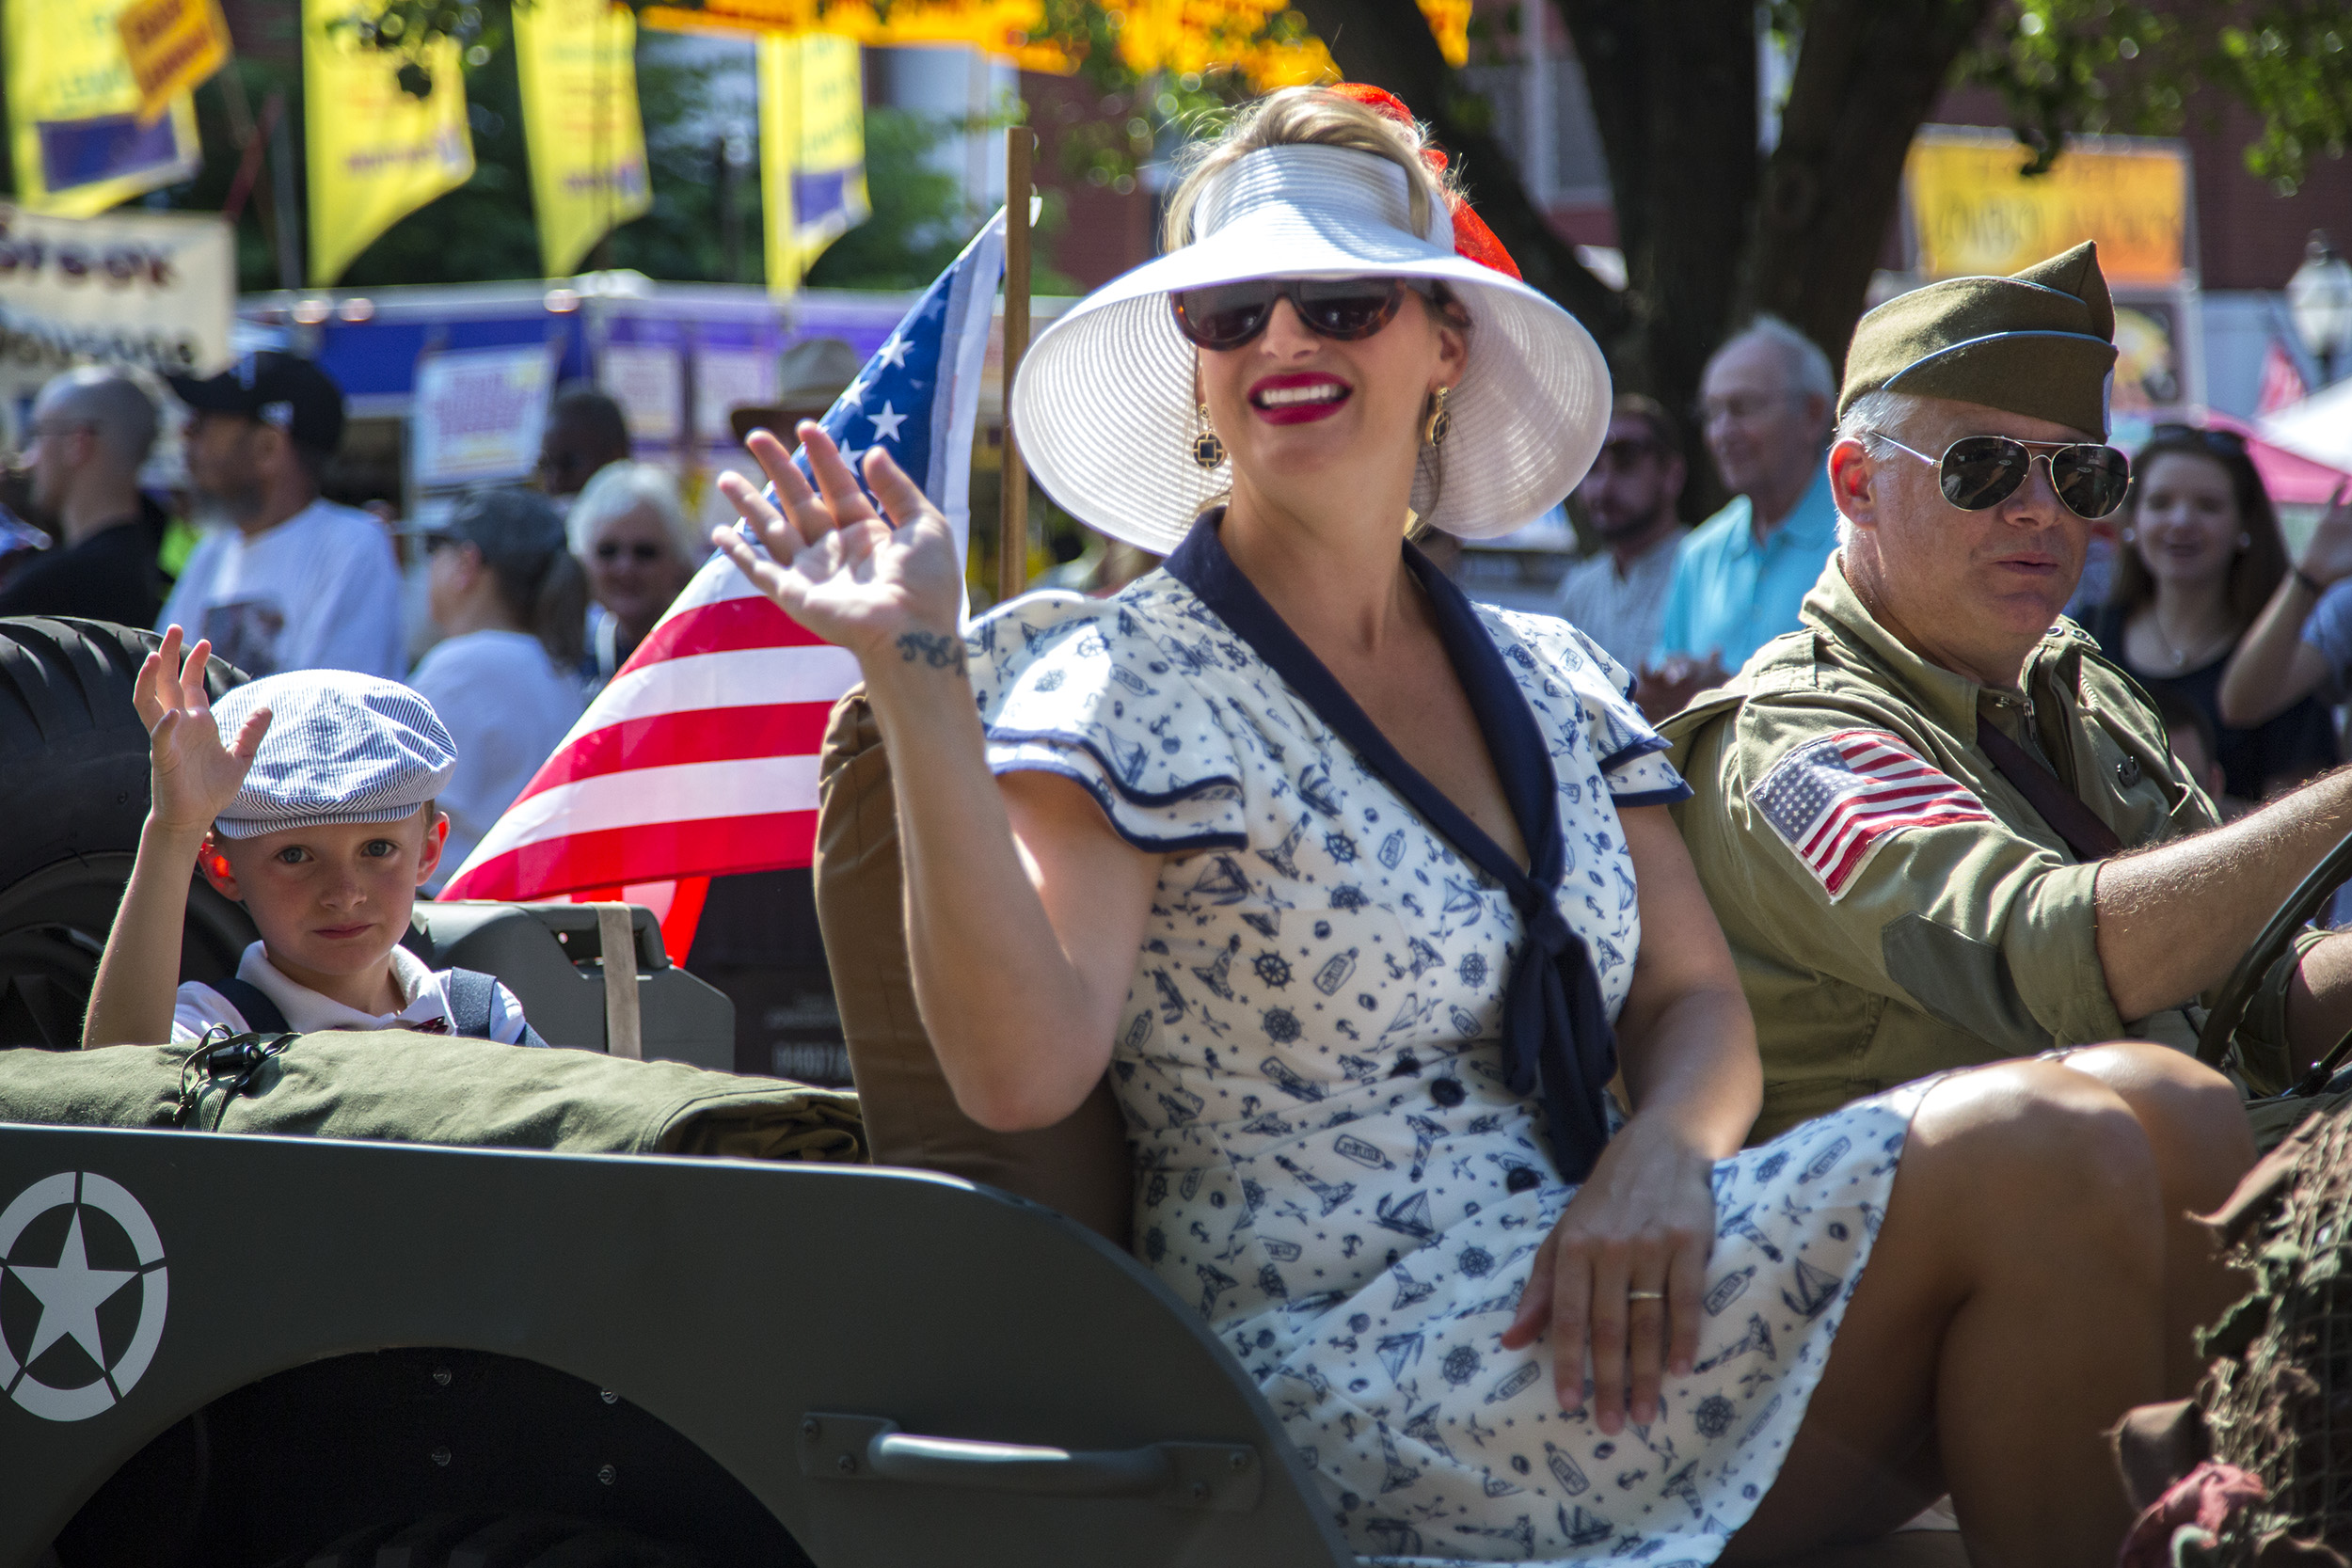 A family dressed in 1940's outfits and an American Flag attached to their car waves at the crowd.